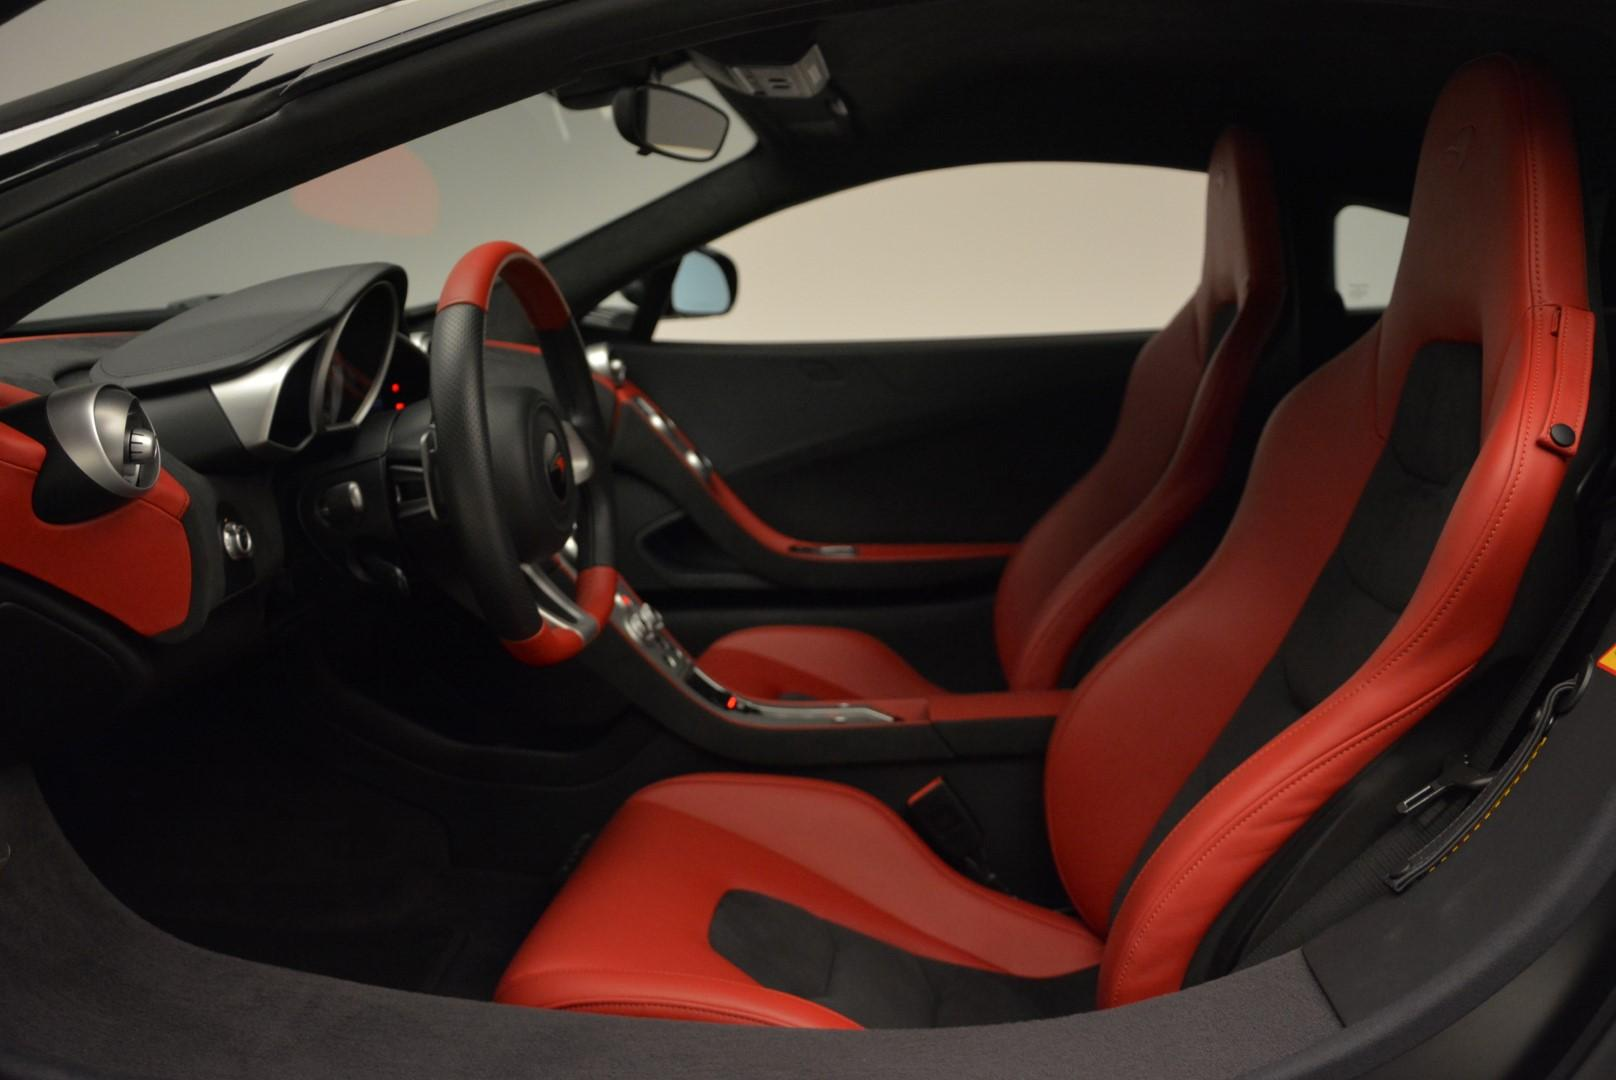 Used 2012 McLaren MP4-12c Coupe For Sale In Greenwich, CT. Alfa Romeo of Greenwich, 3155 70_p16